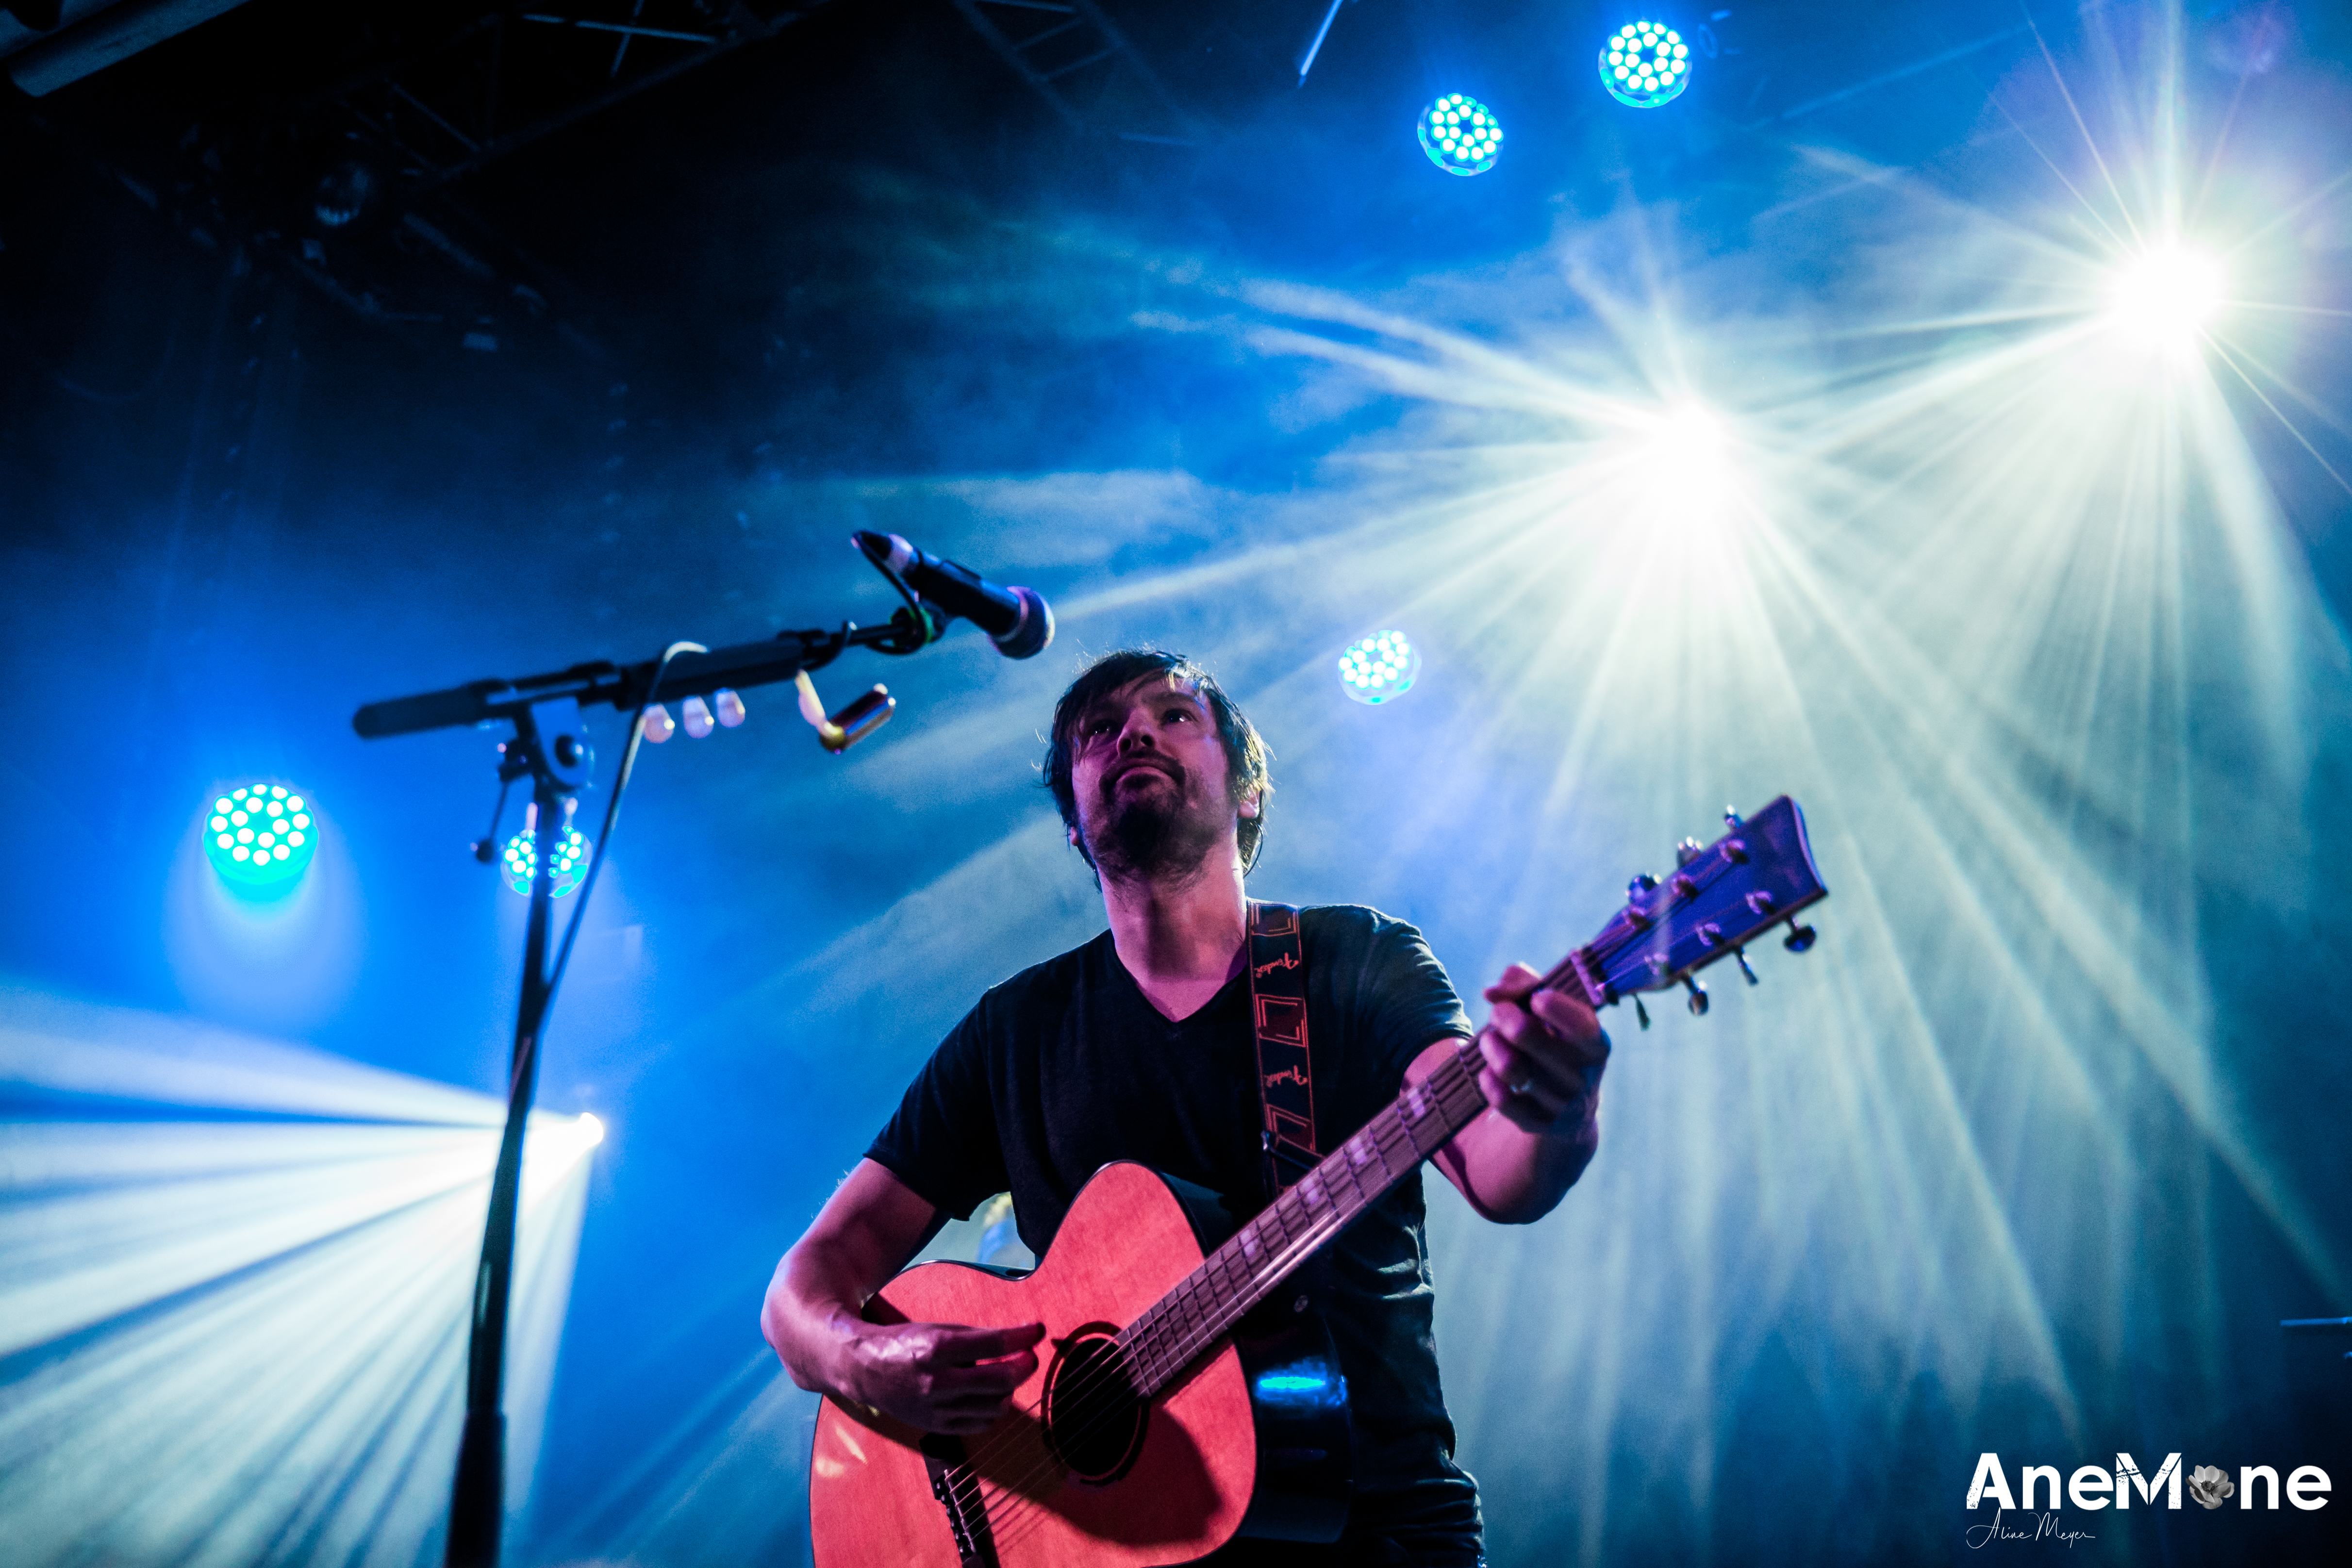 010217 - The Pineapple Thief - 2